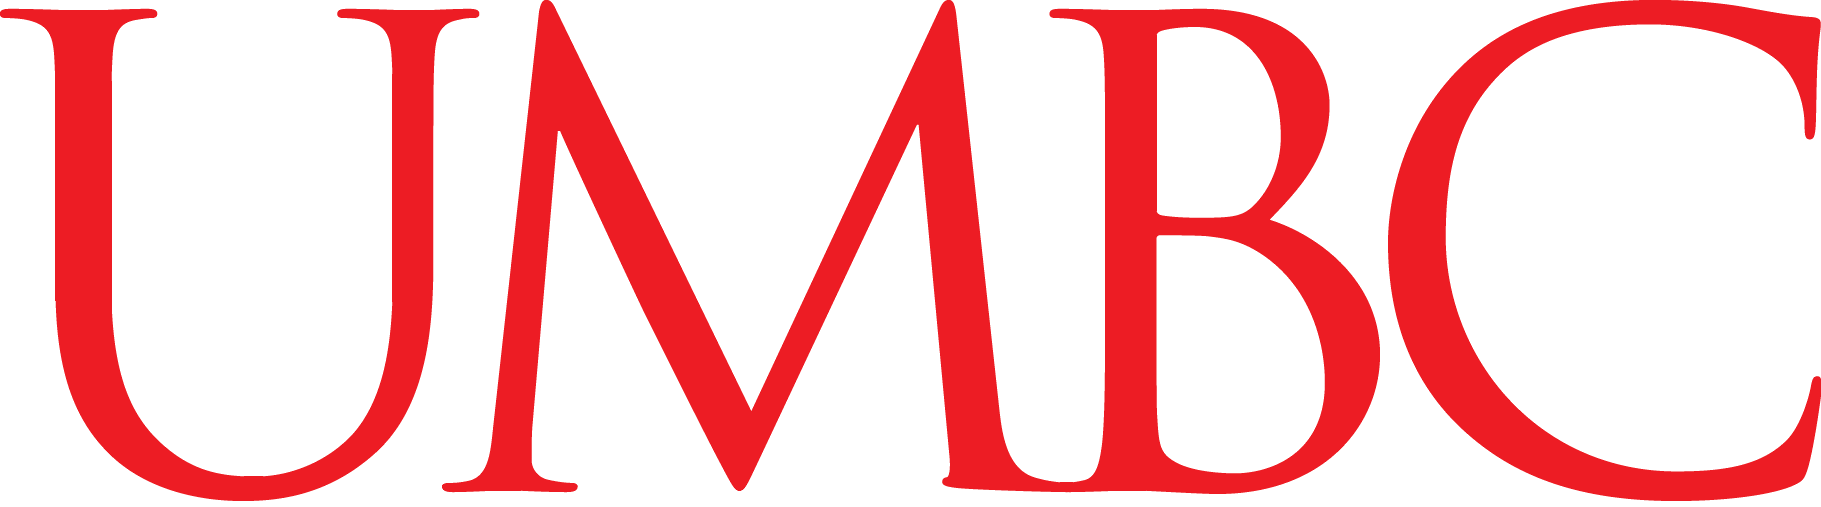 File:UMBC wordmark.png.